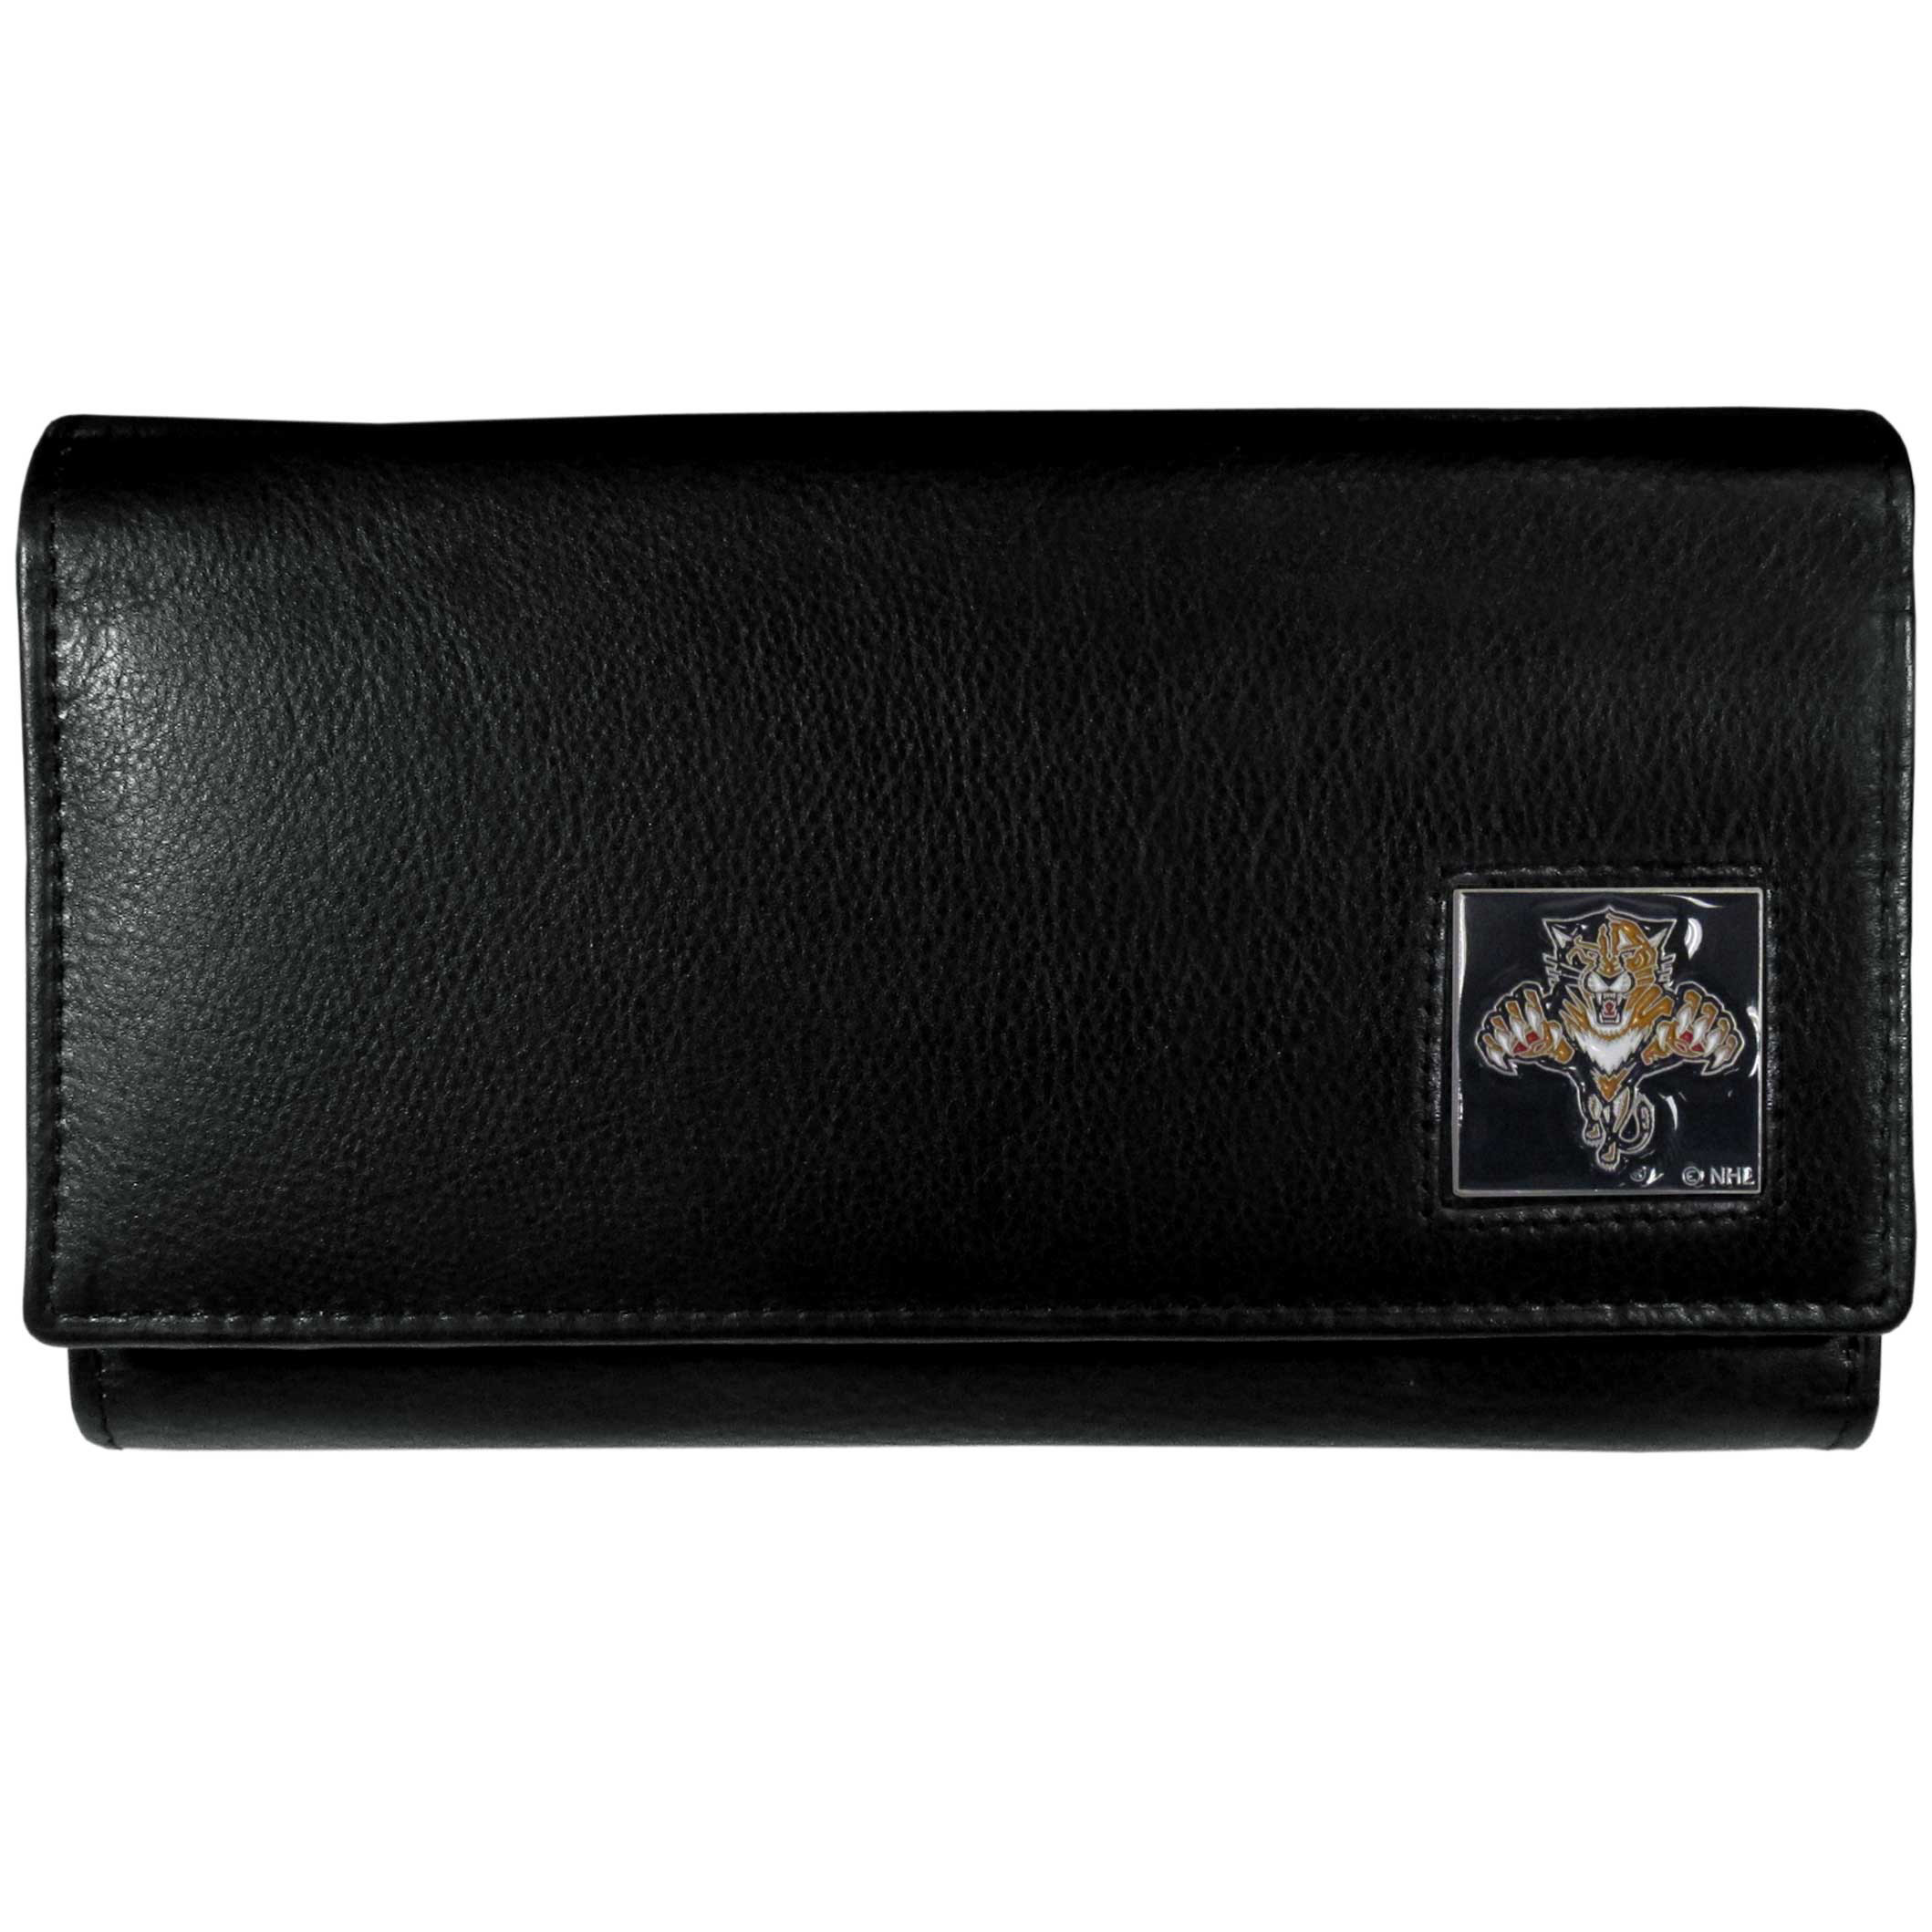 Florida Panthers® Leather Women's Wallet - This genuine leather women's pocketbook features 9 credit card slots, a windowed ID slot, spacious front pocket, inner pocket and zippered coin pocket. The front of the pocketbook has a hand painted metal square with the Florida Panthers® primary logo.